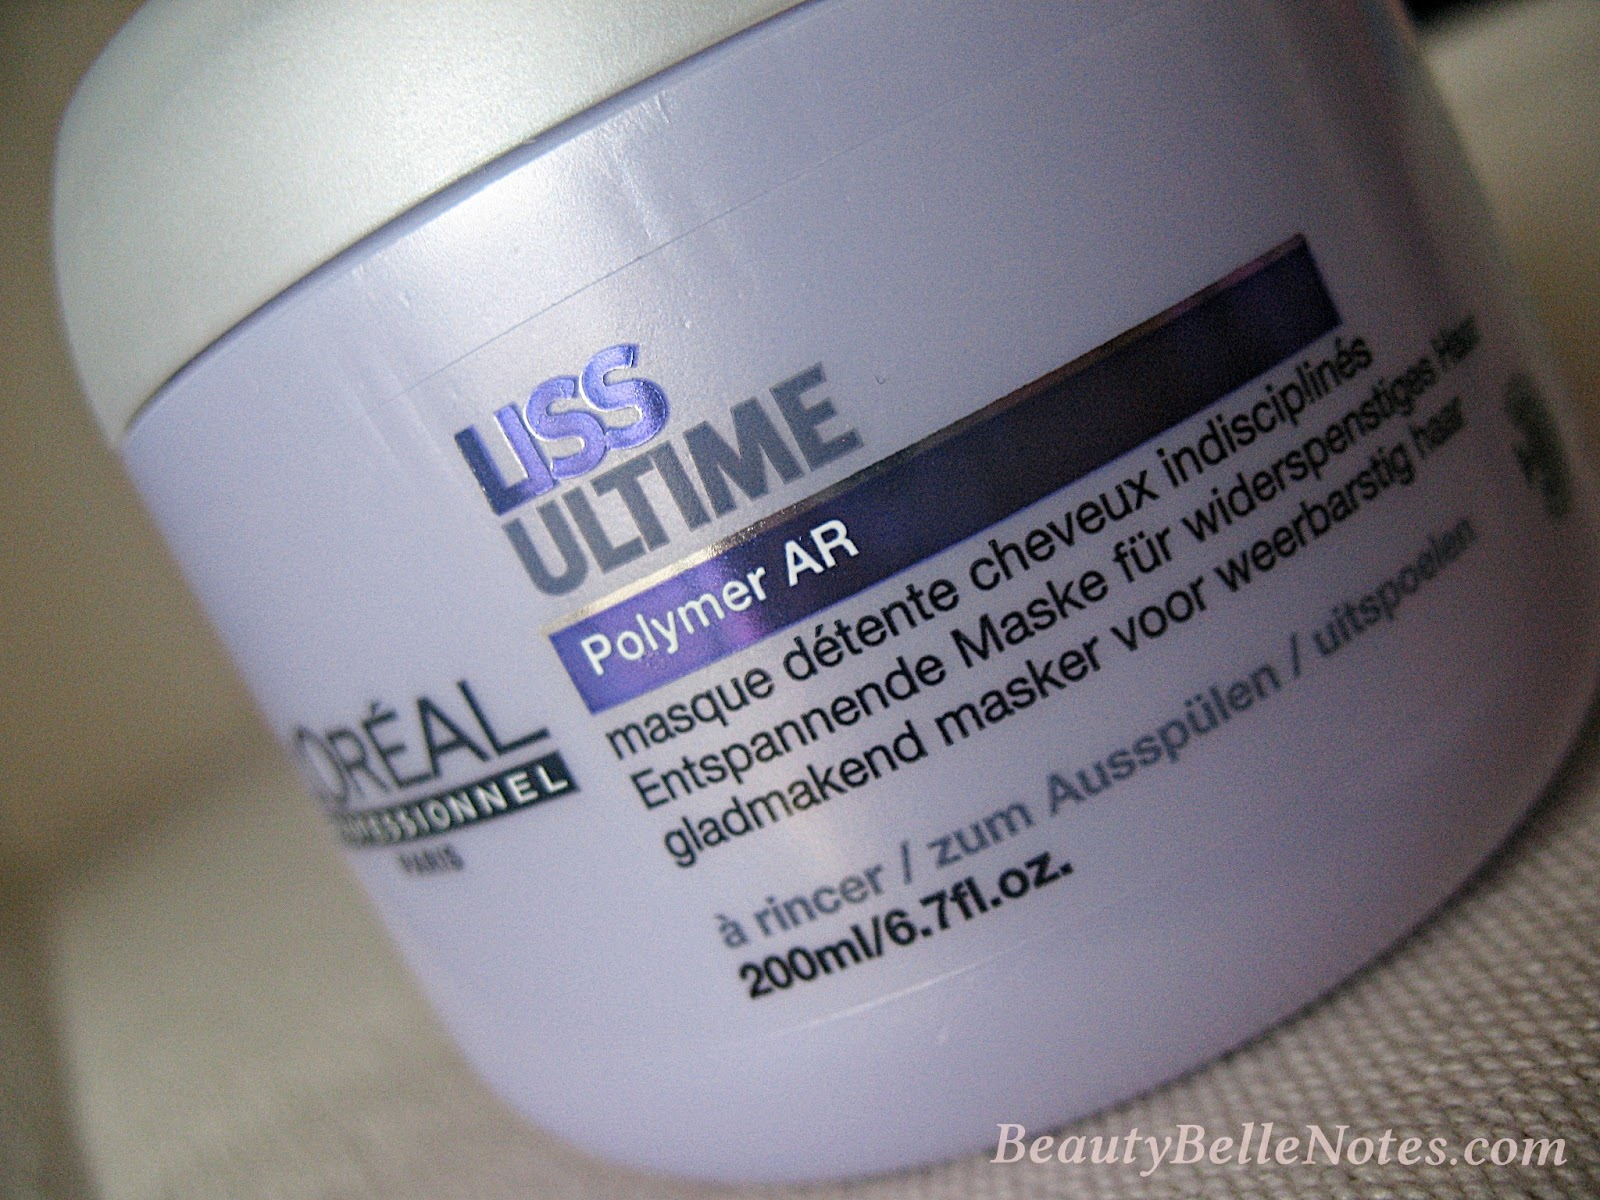 L'Oreal-Liss-Ultime-Polymer-AR-Masque-review-photos-06